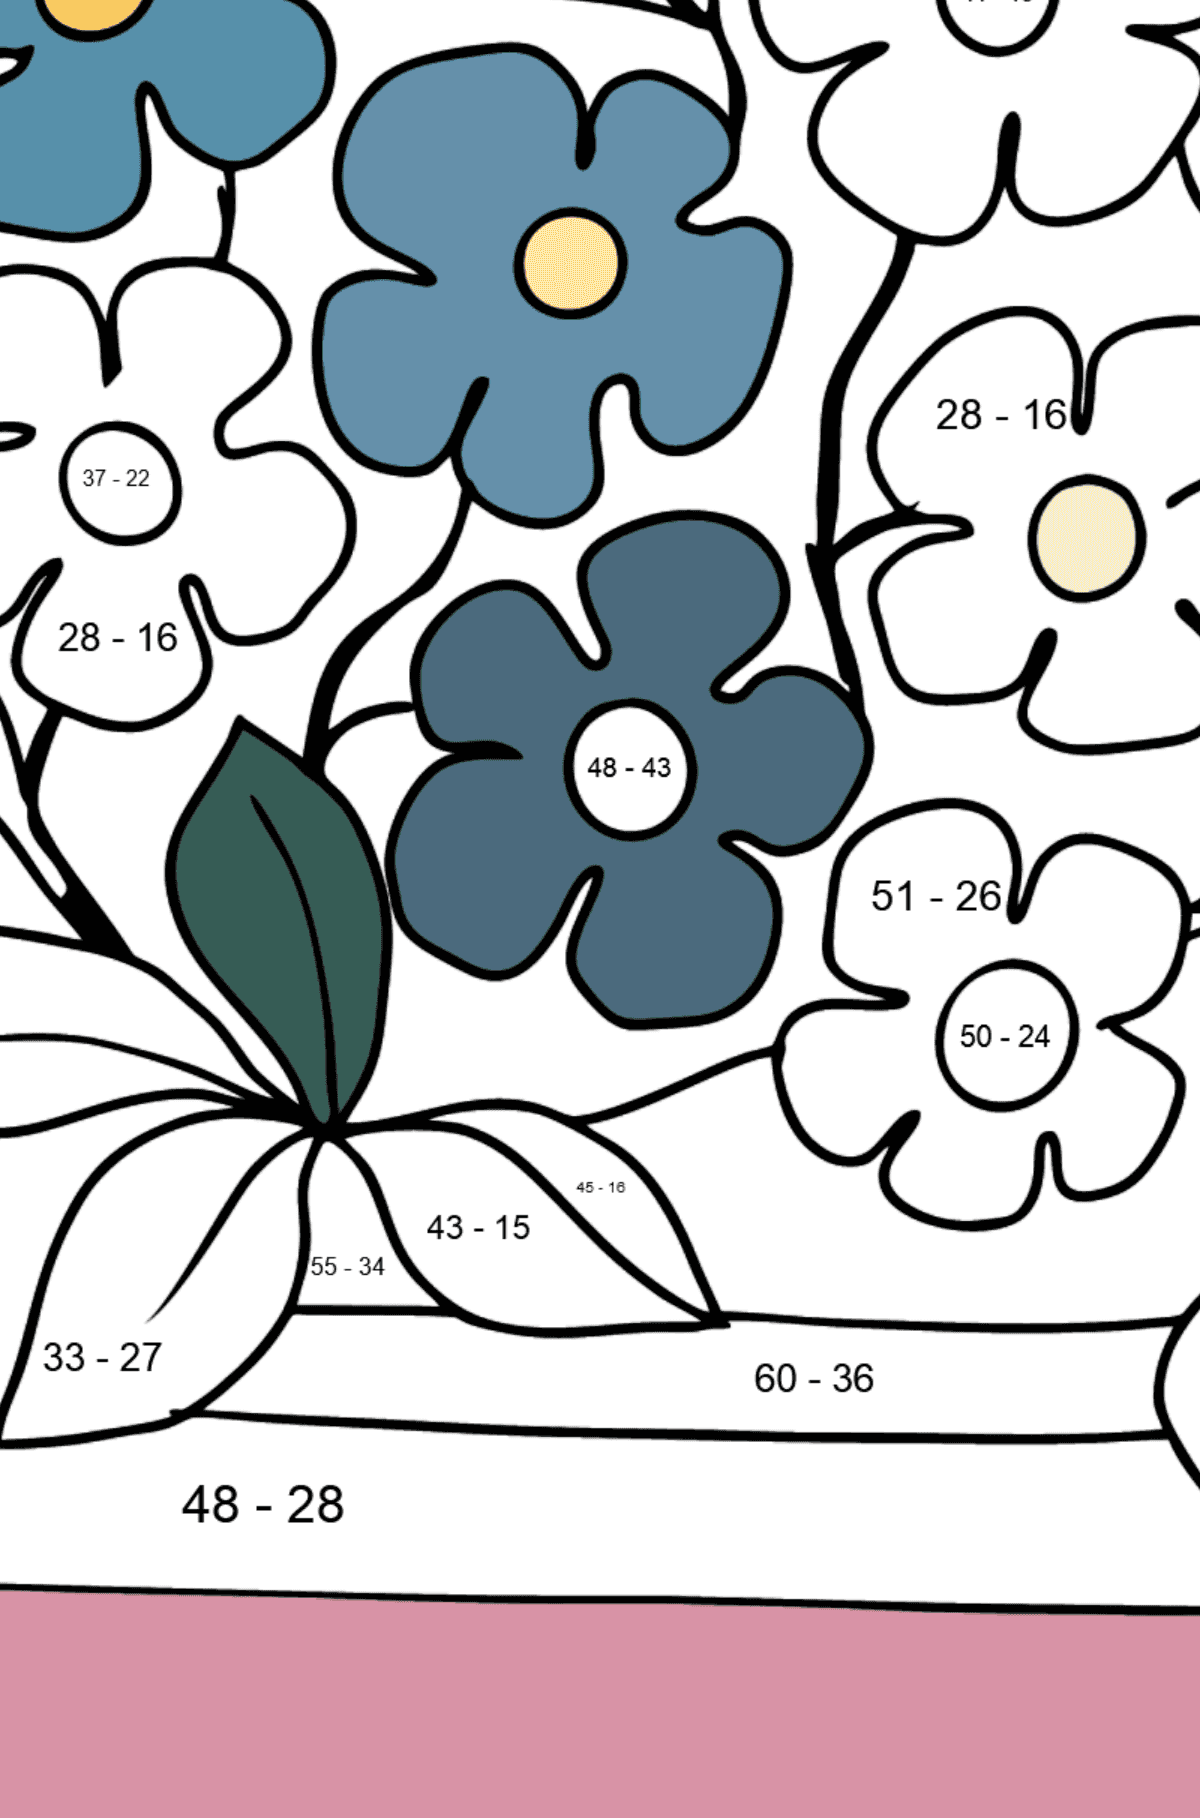 Flower Coloring Page - Forget me nots - Math Coloring - Subtraction for Kids